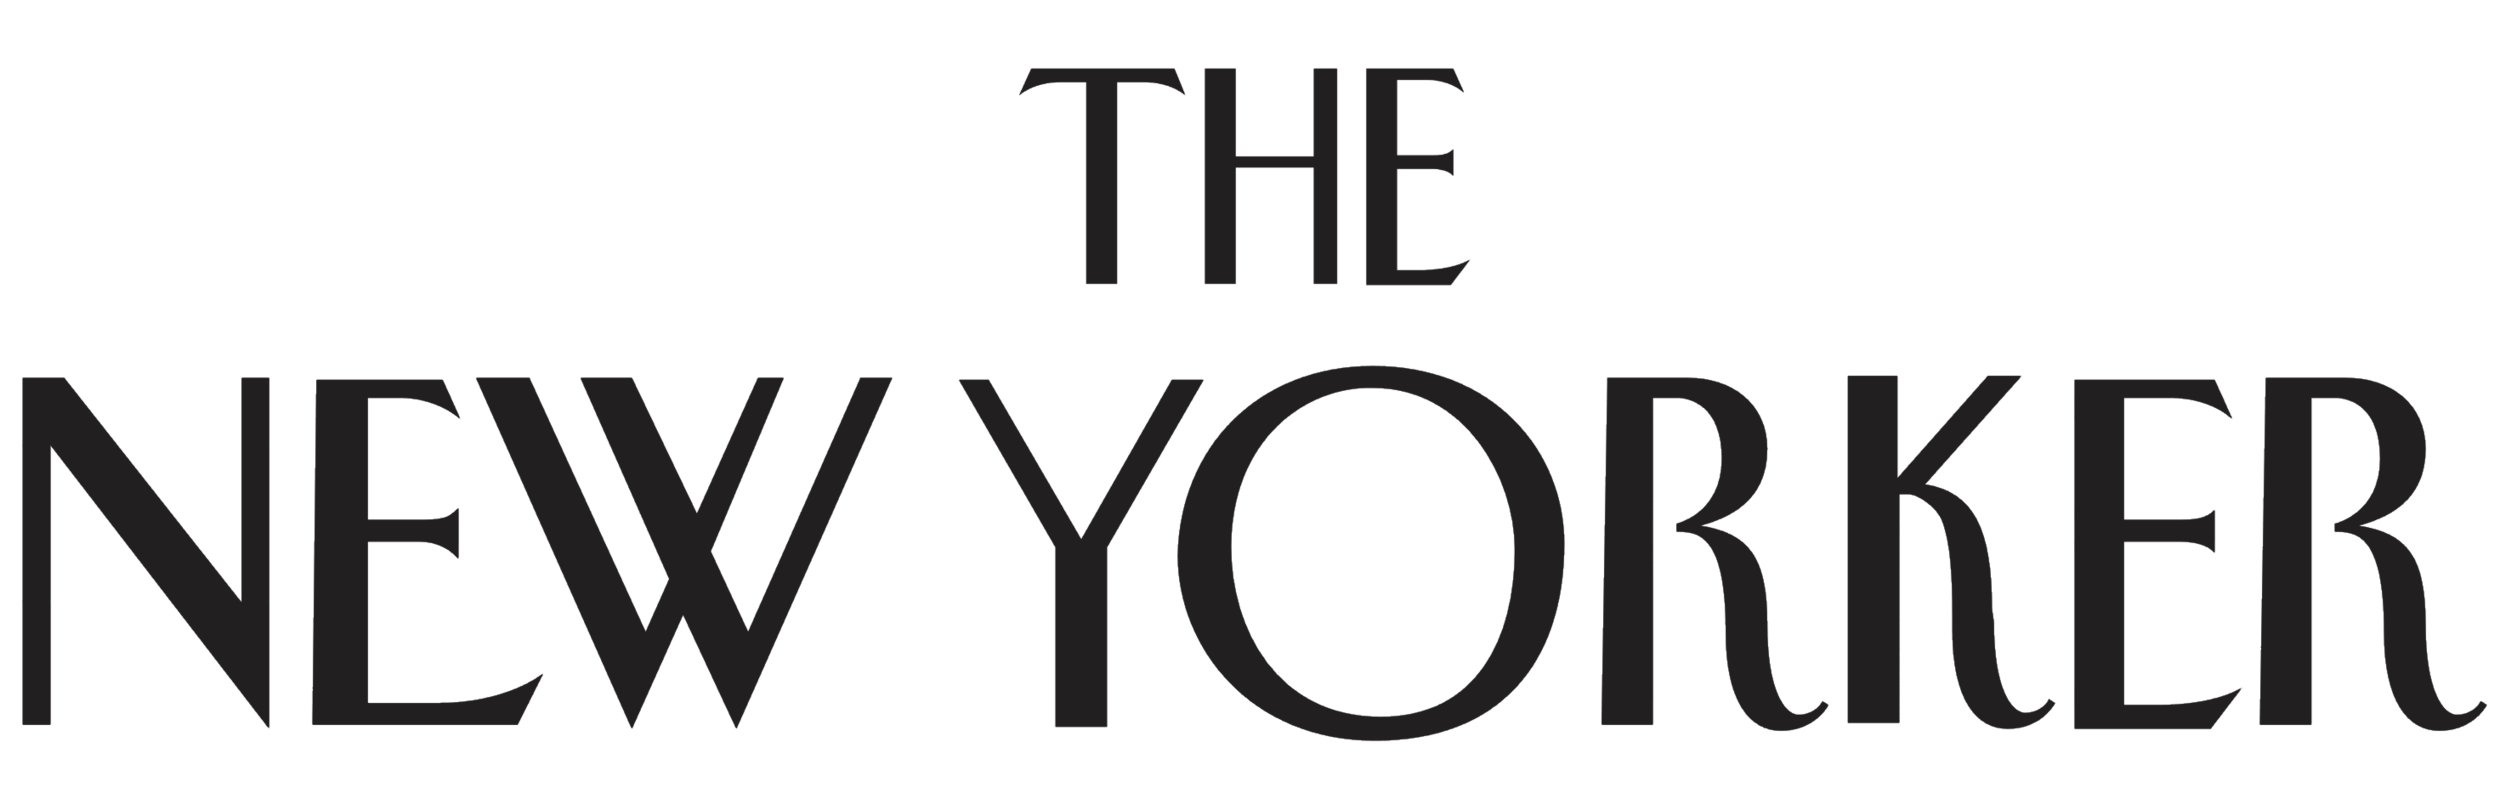 The_New_Yorker_logo-1.png